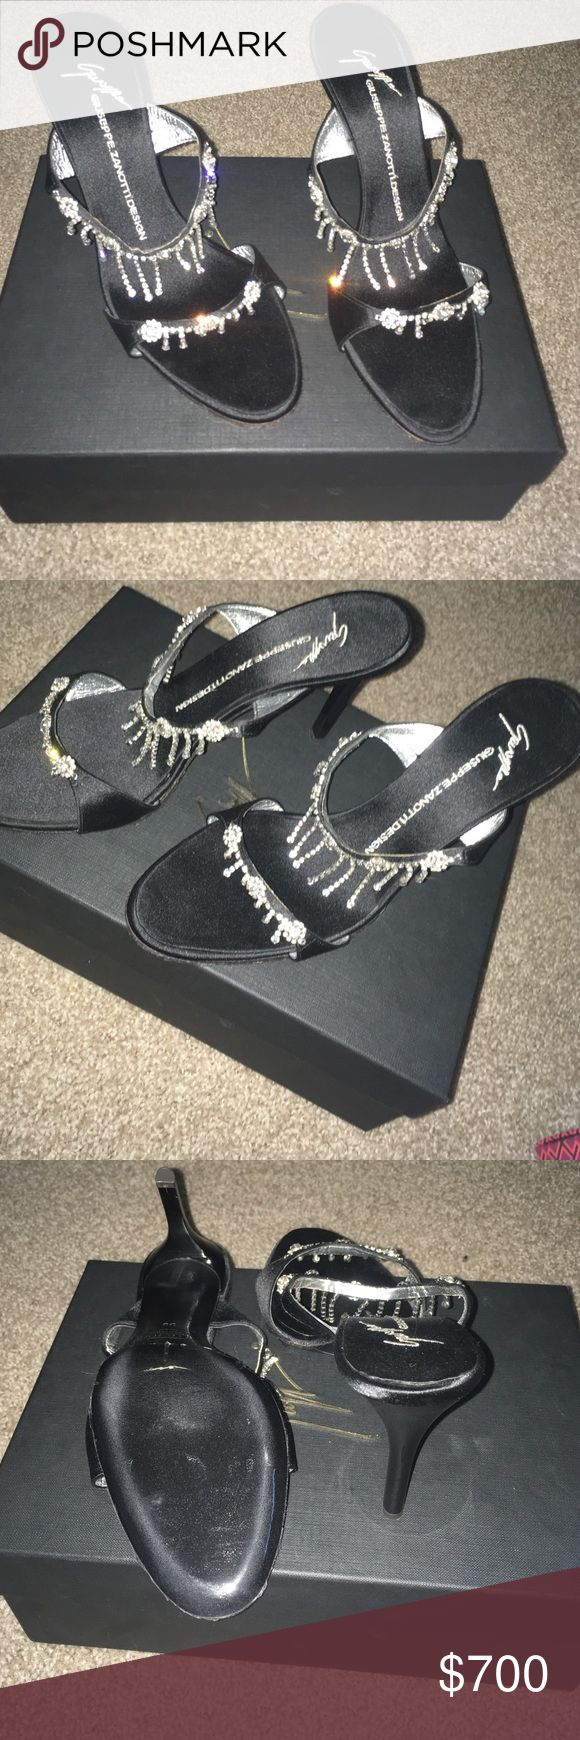 Giuseppe Zanotti Design Heels Black Giuseppe Zanotti Design Heels with crystals all over. Never used, brand new. Just don't want them. Purchased through Giuseppe a while ago. Doesn't have all original tags. Thanks! Giuseppe Zanotti Shoes Heels